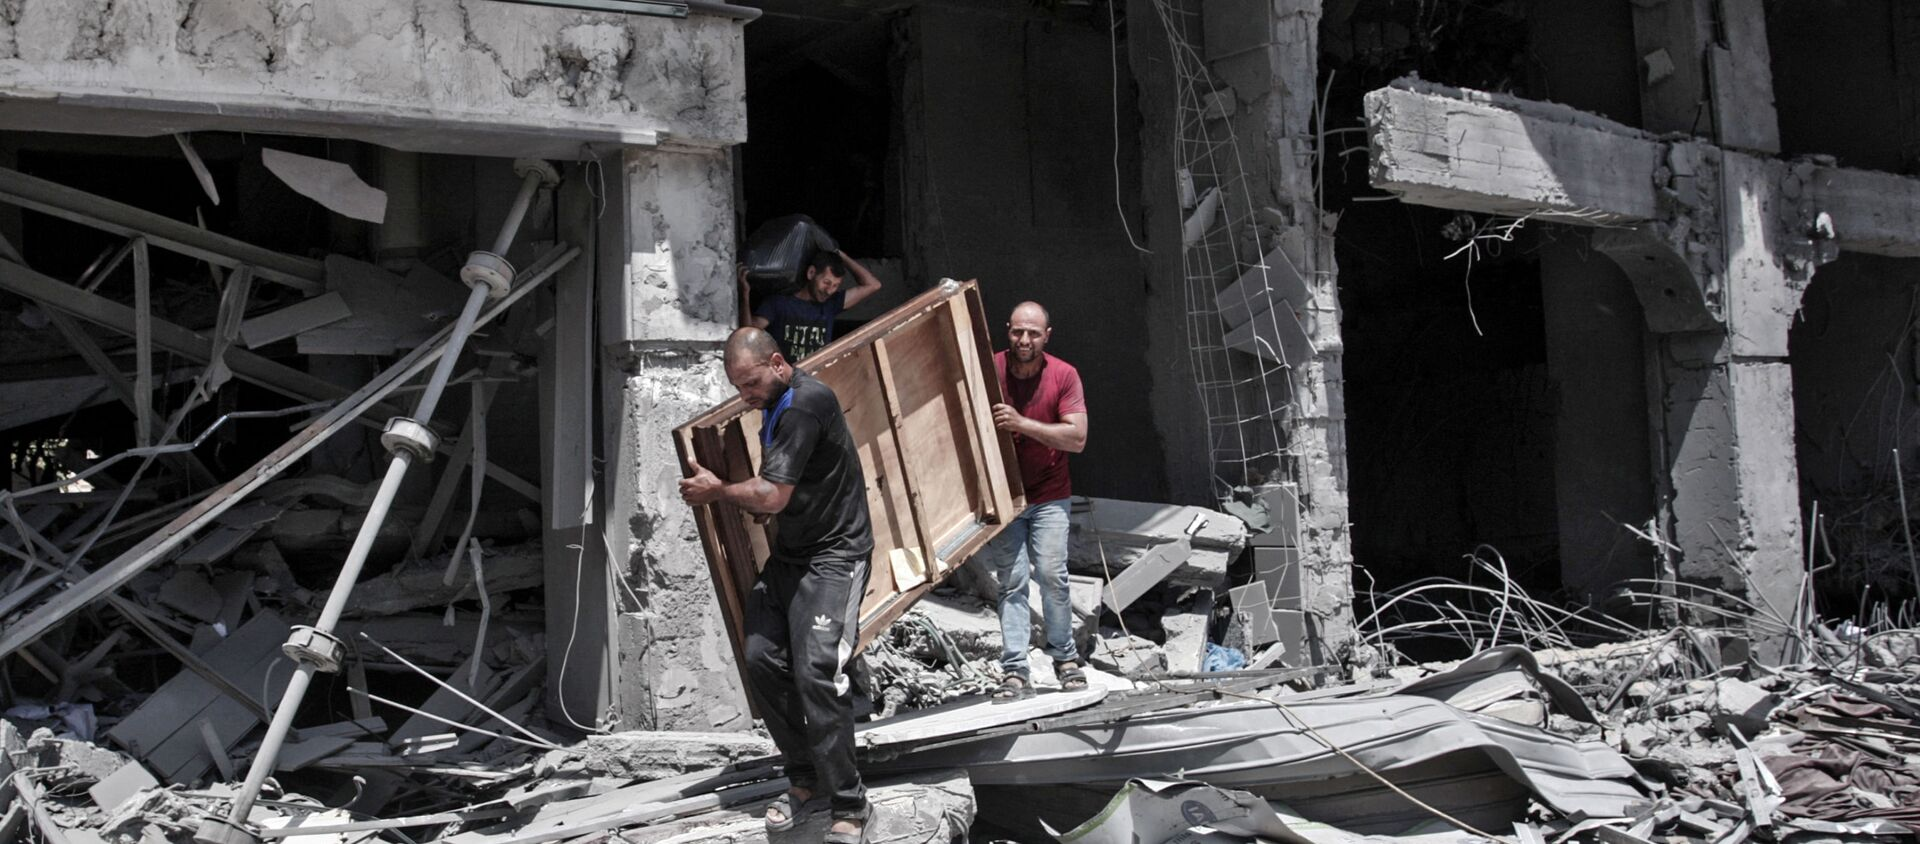 Palestinian men remove salvageable items from the bombarded Al-Jawhara Tower in Gaza City on May 17, 2021, five days after it was targeted by Israeli airstrikes. - Sputnik International, 1920, 17.05.2021